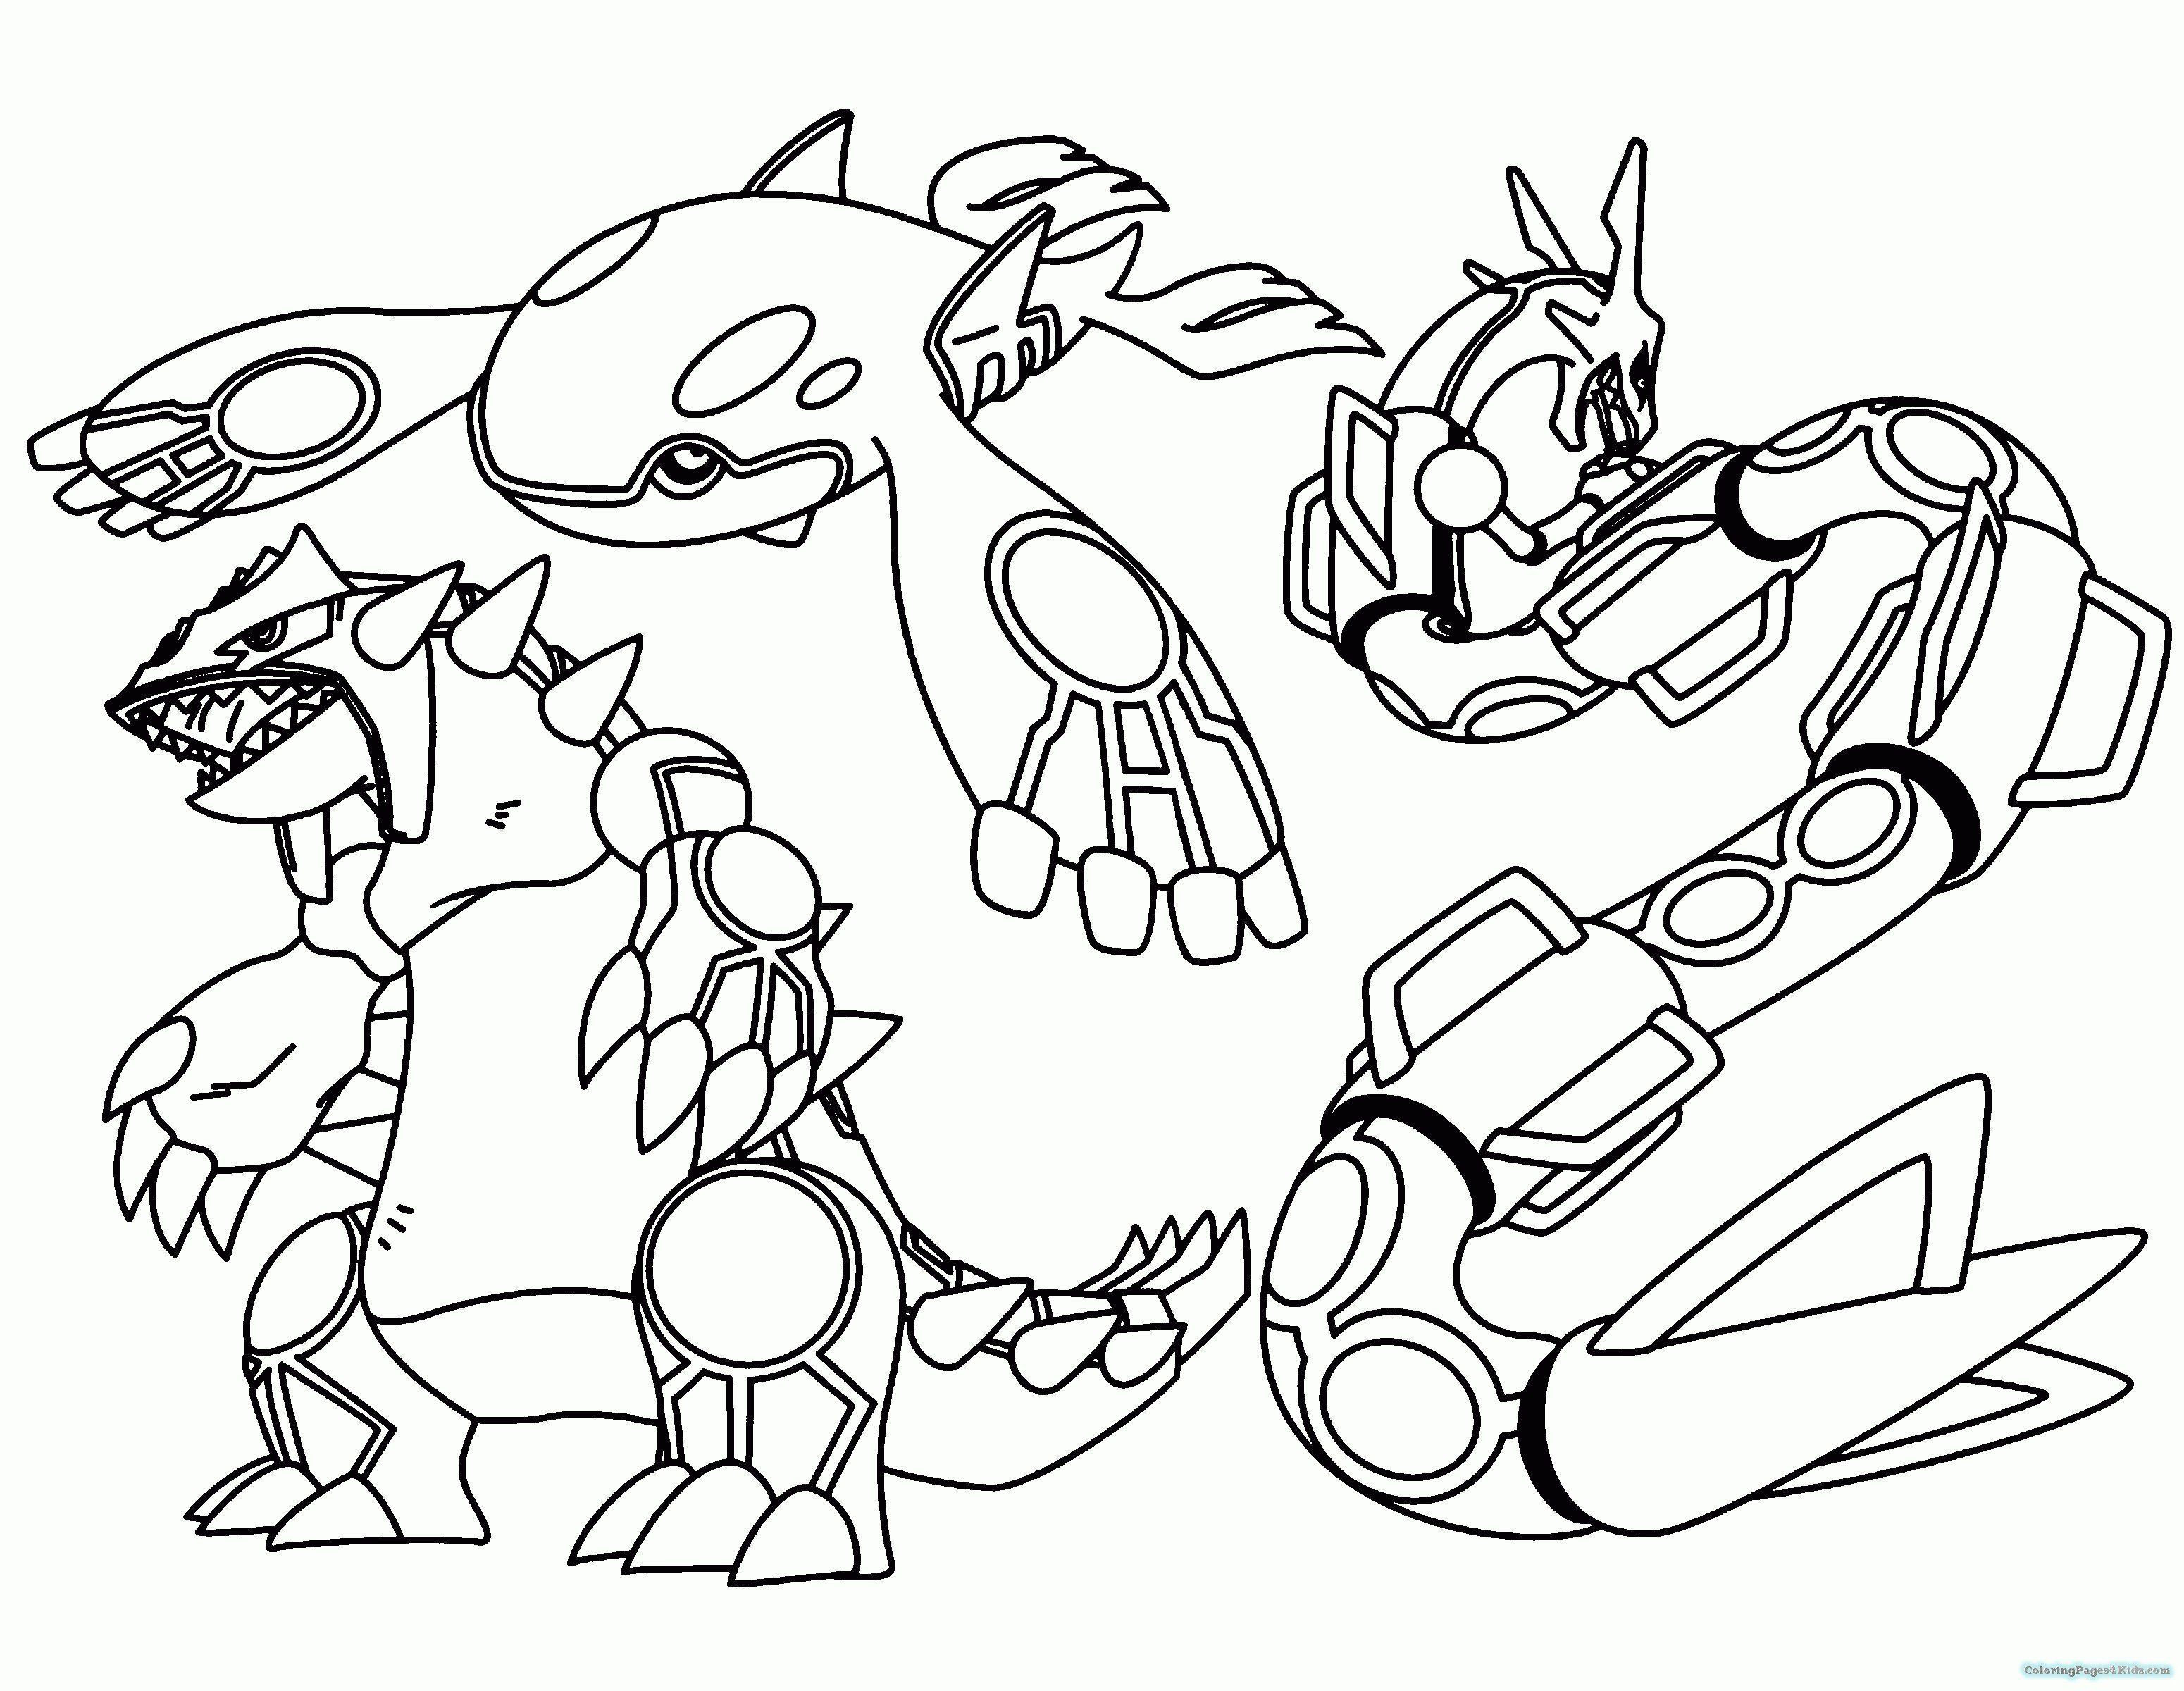 Legendary Pokemon Coloring Pages Best Of Page 133 Gallery Design Of Coloring Pages Pokemon Coloring Pages Cartoon Coloring Pages Coloring Pages